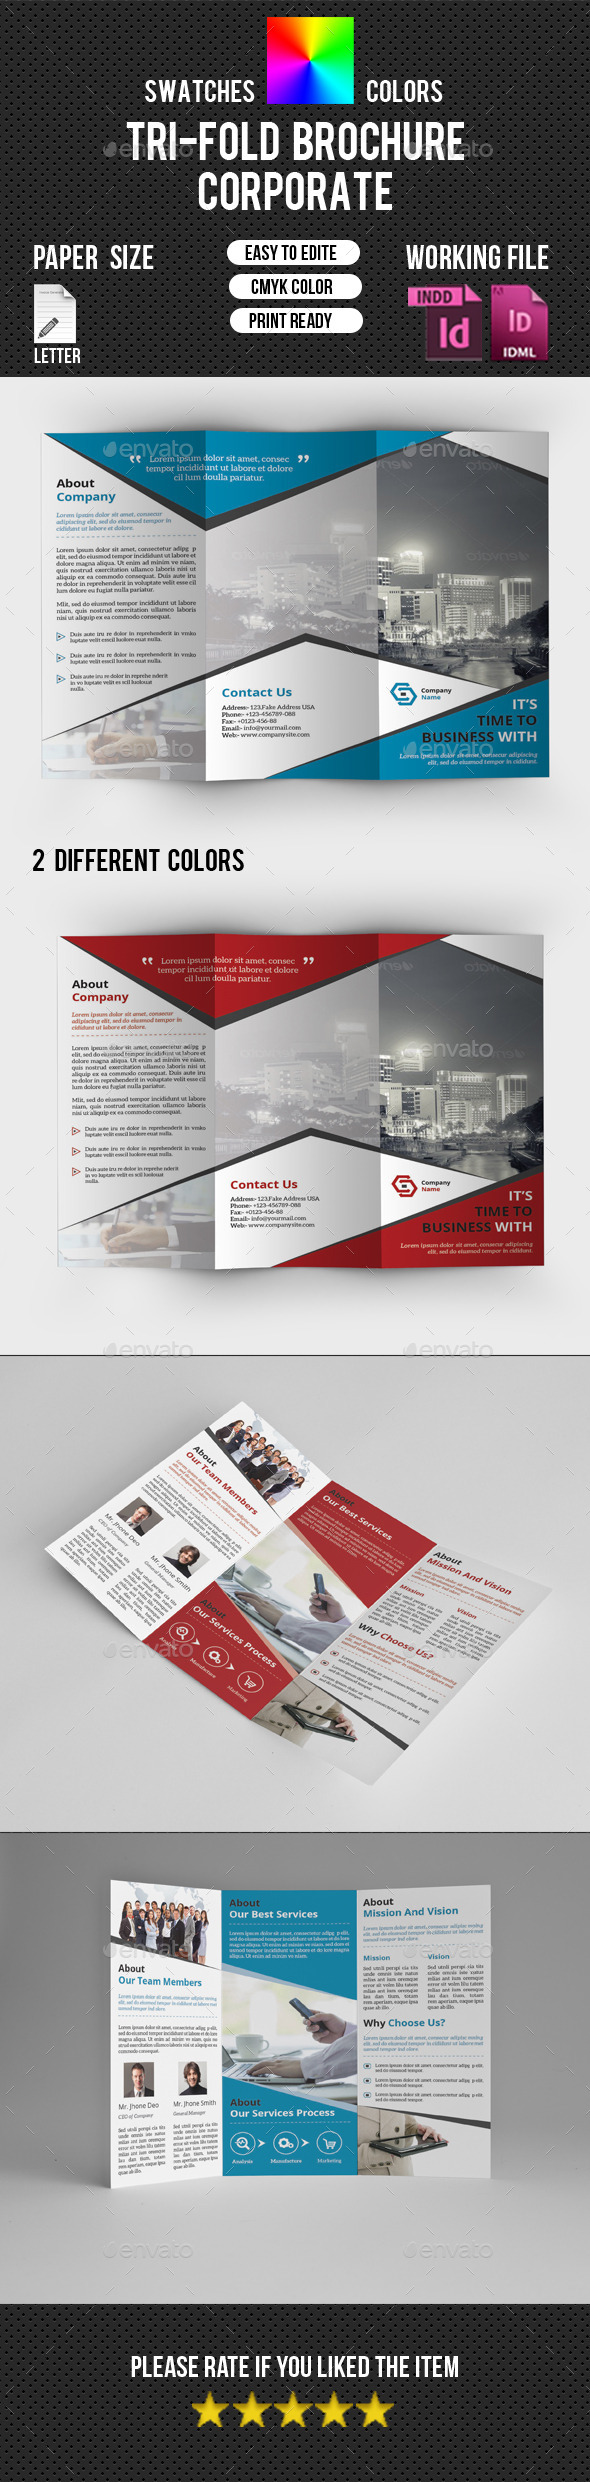 Corporate Trifold Brochure-V225 - Corporate Brochures